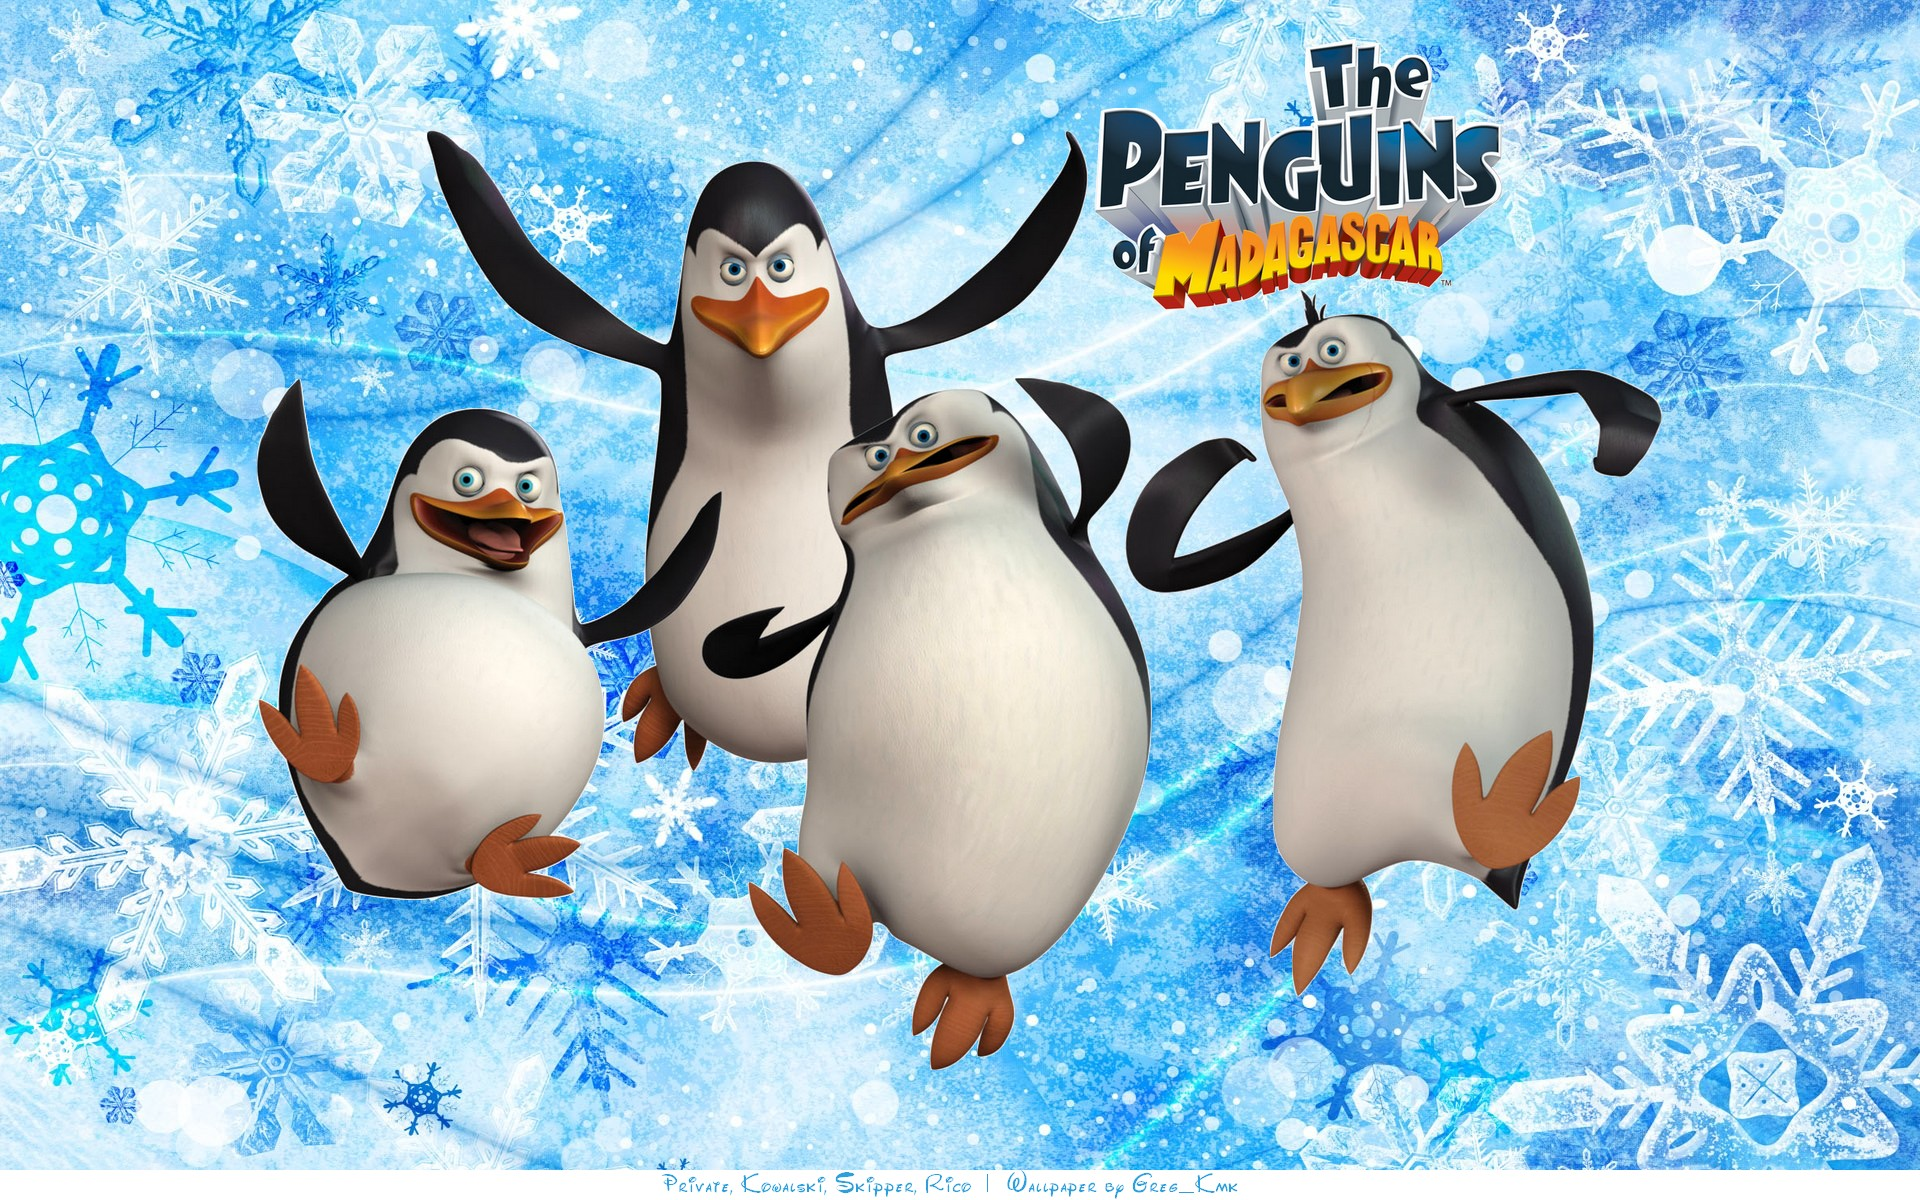 Penguins of madagascar images the penguins of madagascar - Madagascar wallpaper ...